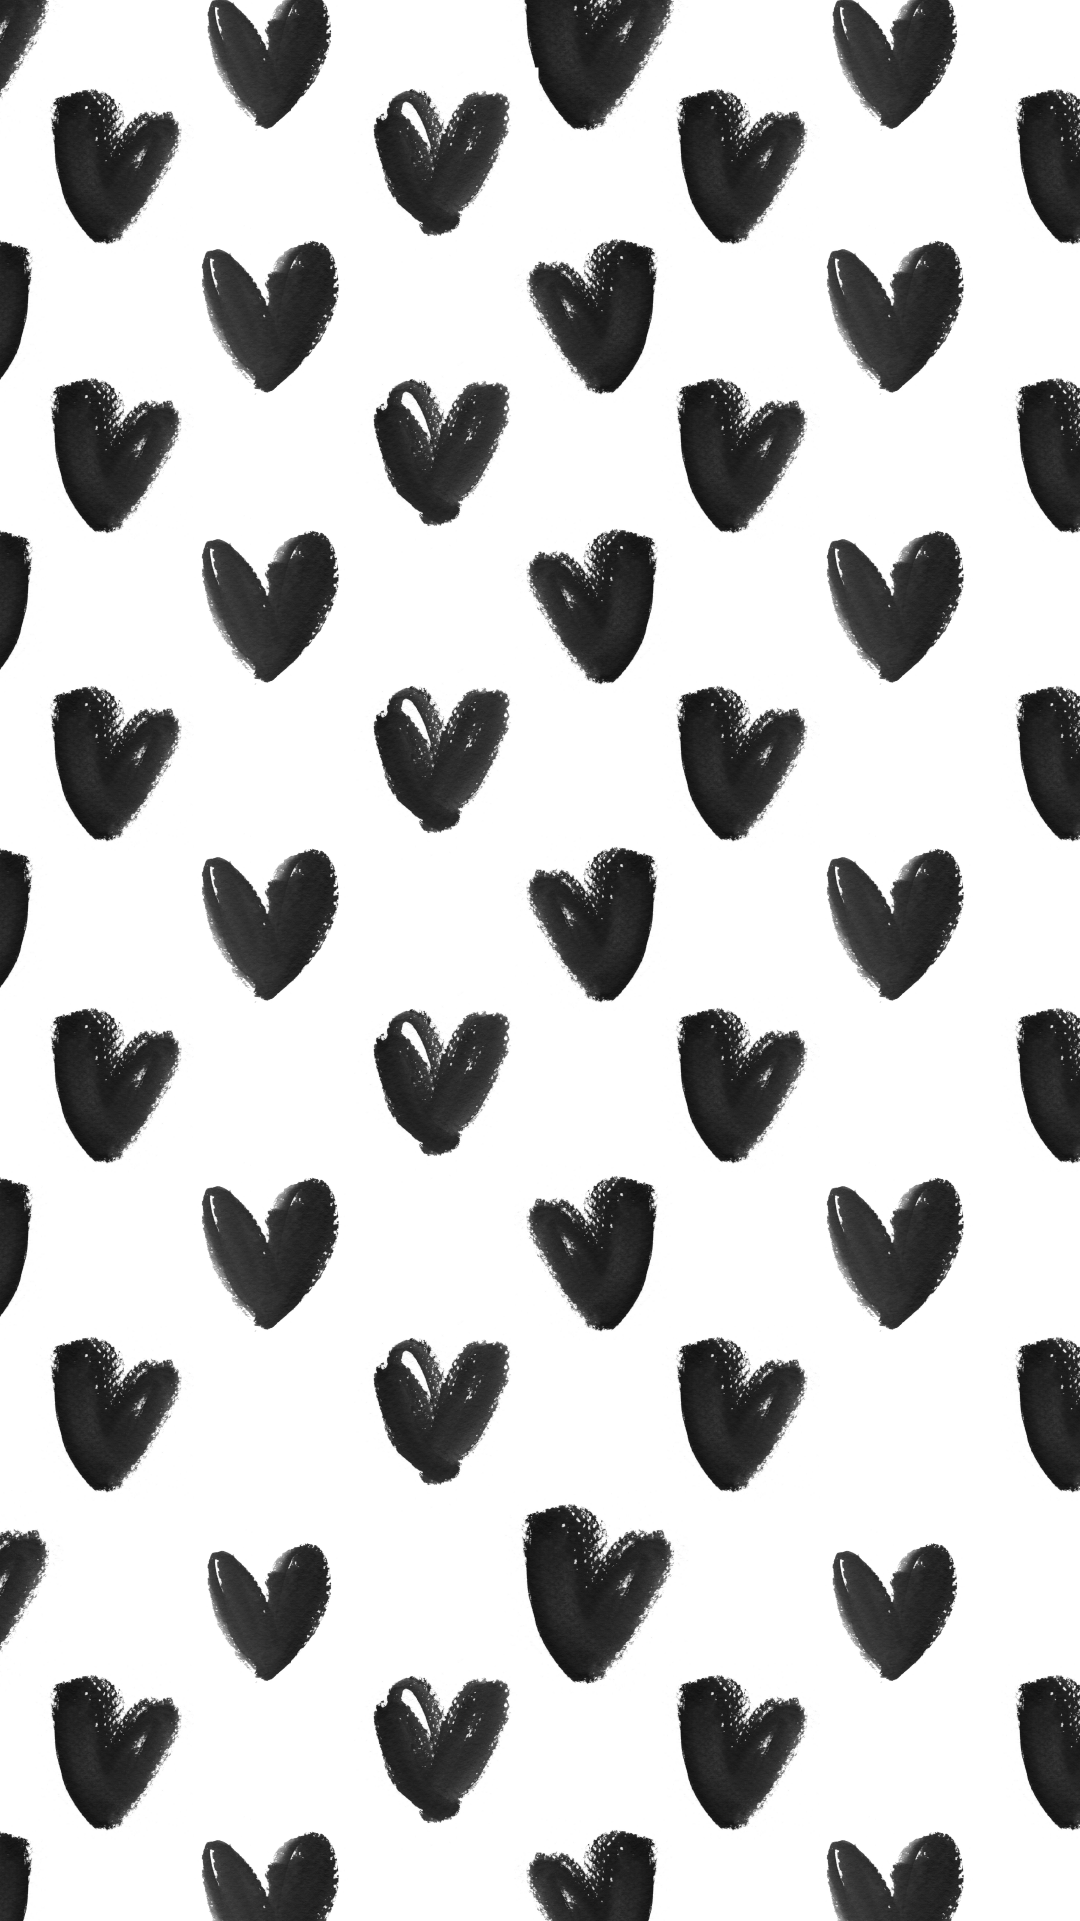 Black-White-watercolour-hearts-iphone-background-phone-lock-screen-wallpaper-wpc9002954